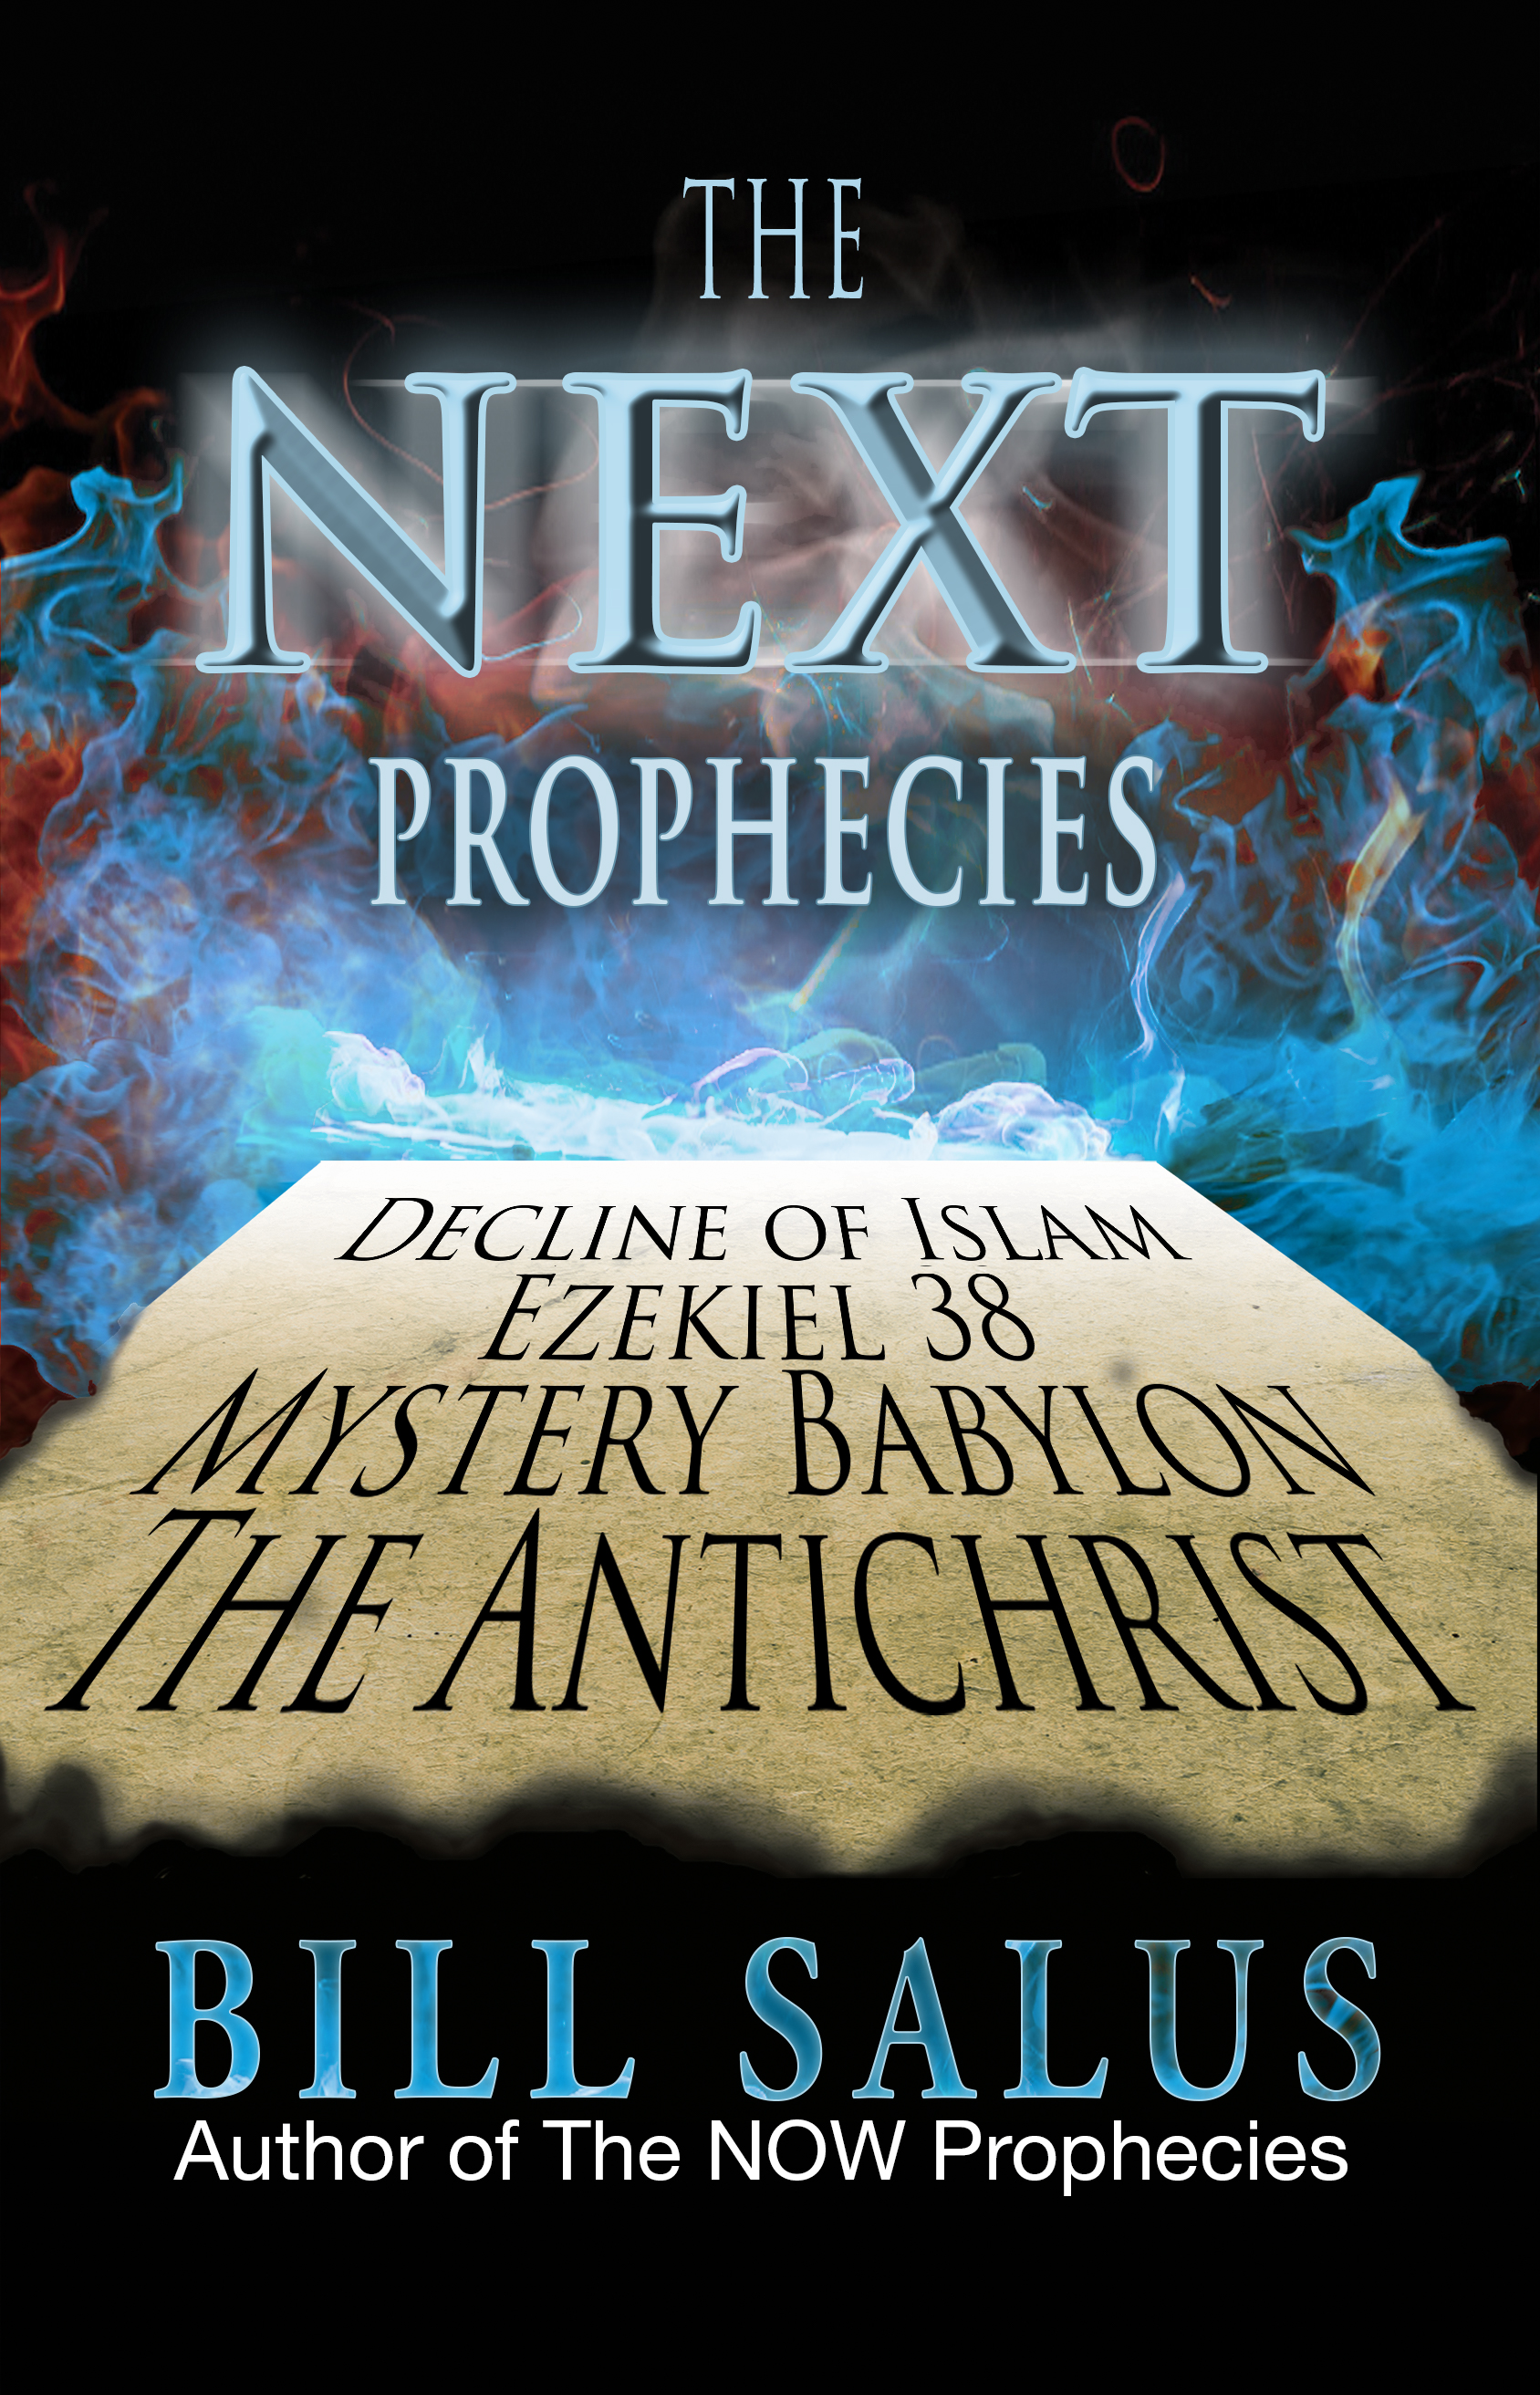 ORDER THE NEXT PROPHECIES ...